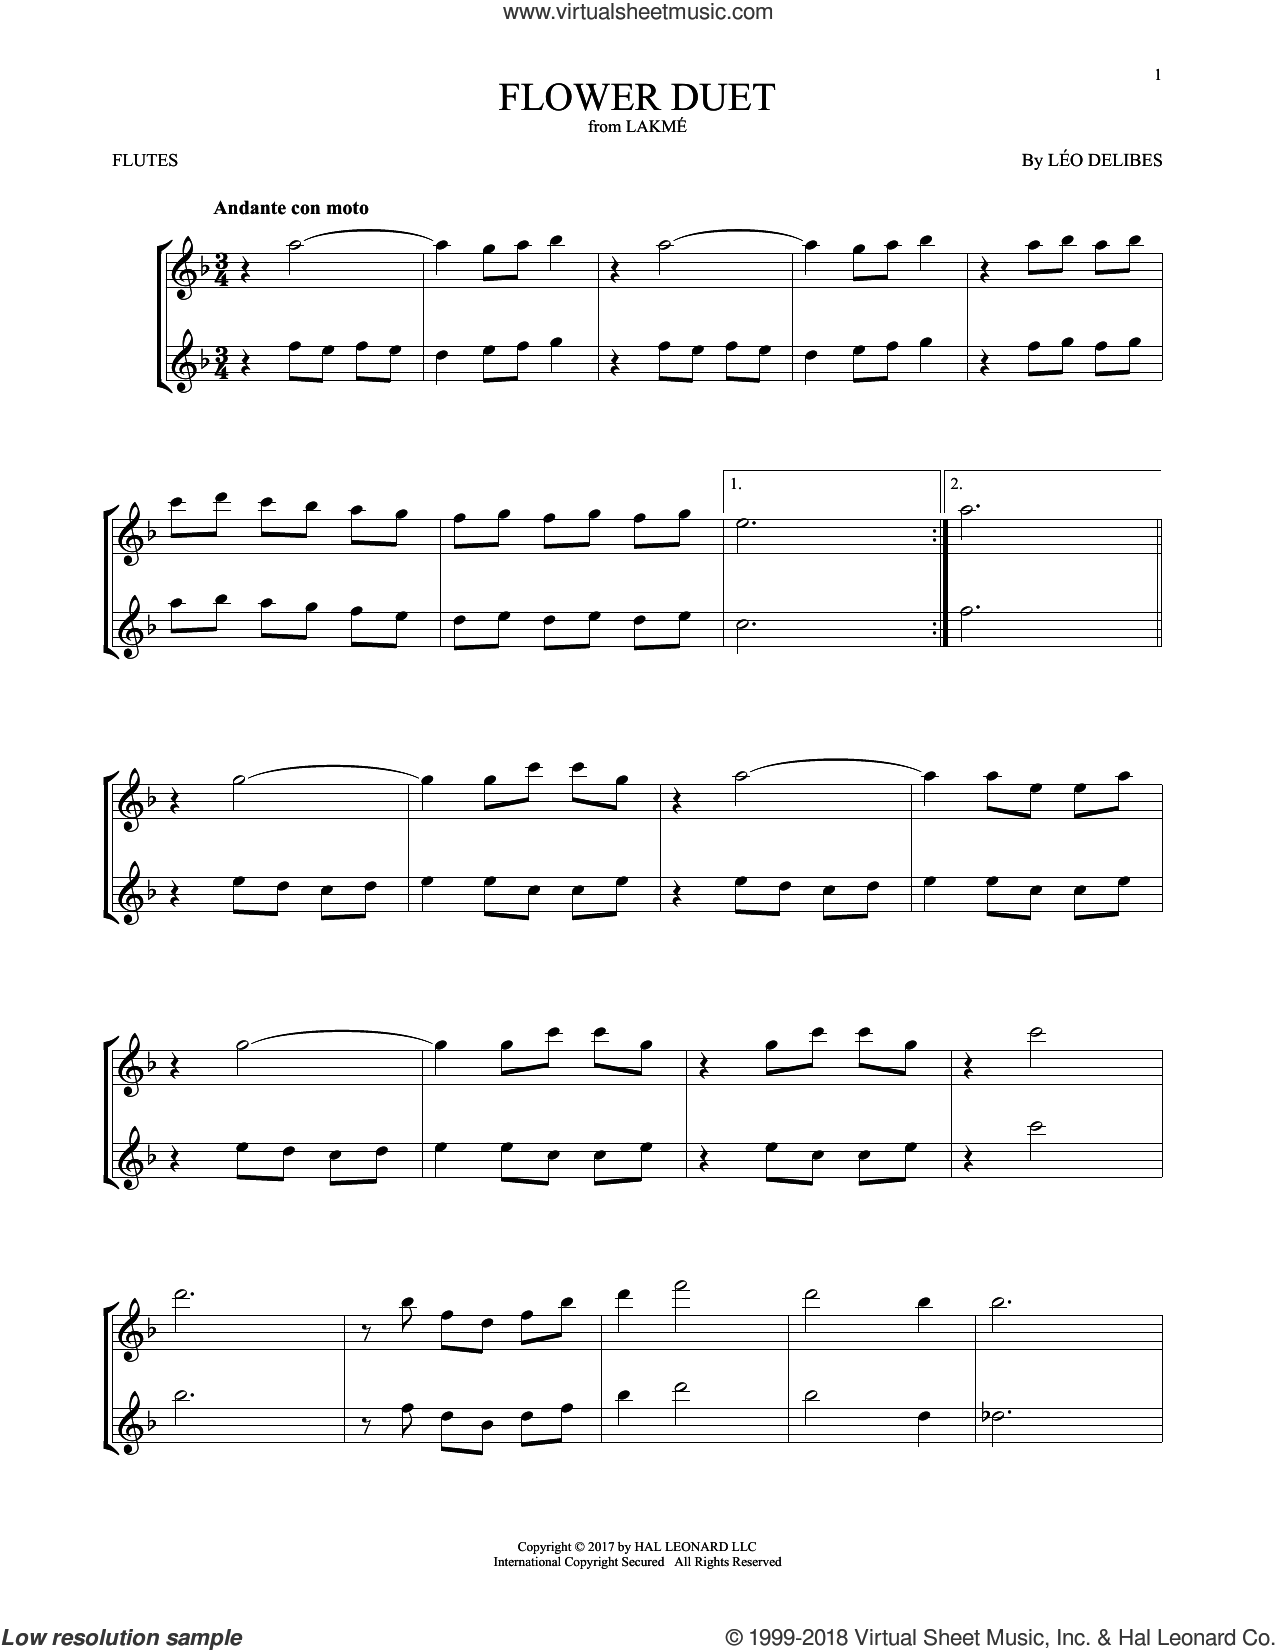 Flower Duet sheet music for two flutes (duets) by Leo Delibes, classical score, intermediate skill level